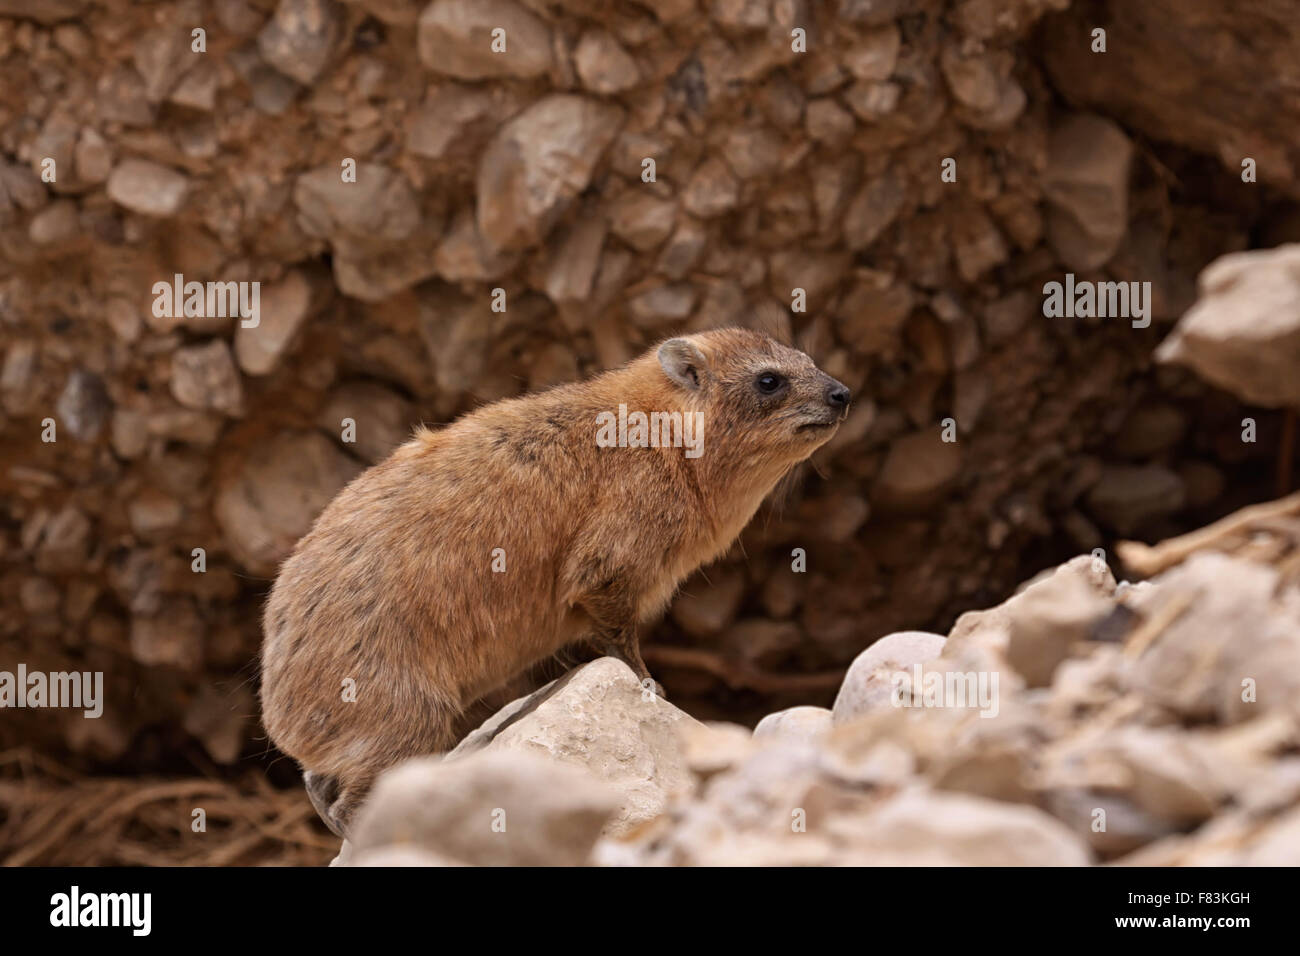 Hyrax This rodent looking animal lives in Ein Gedi in Israel. - Stock Image